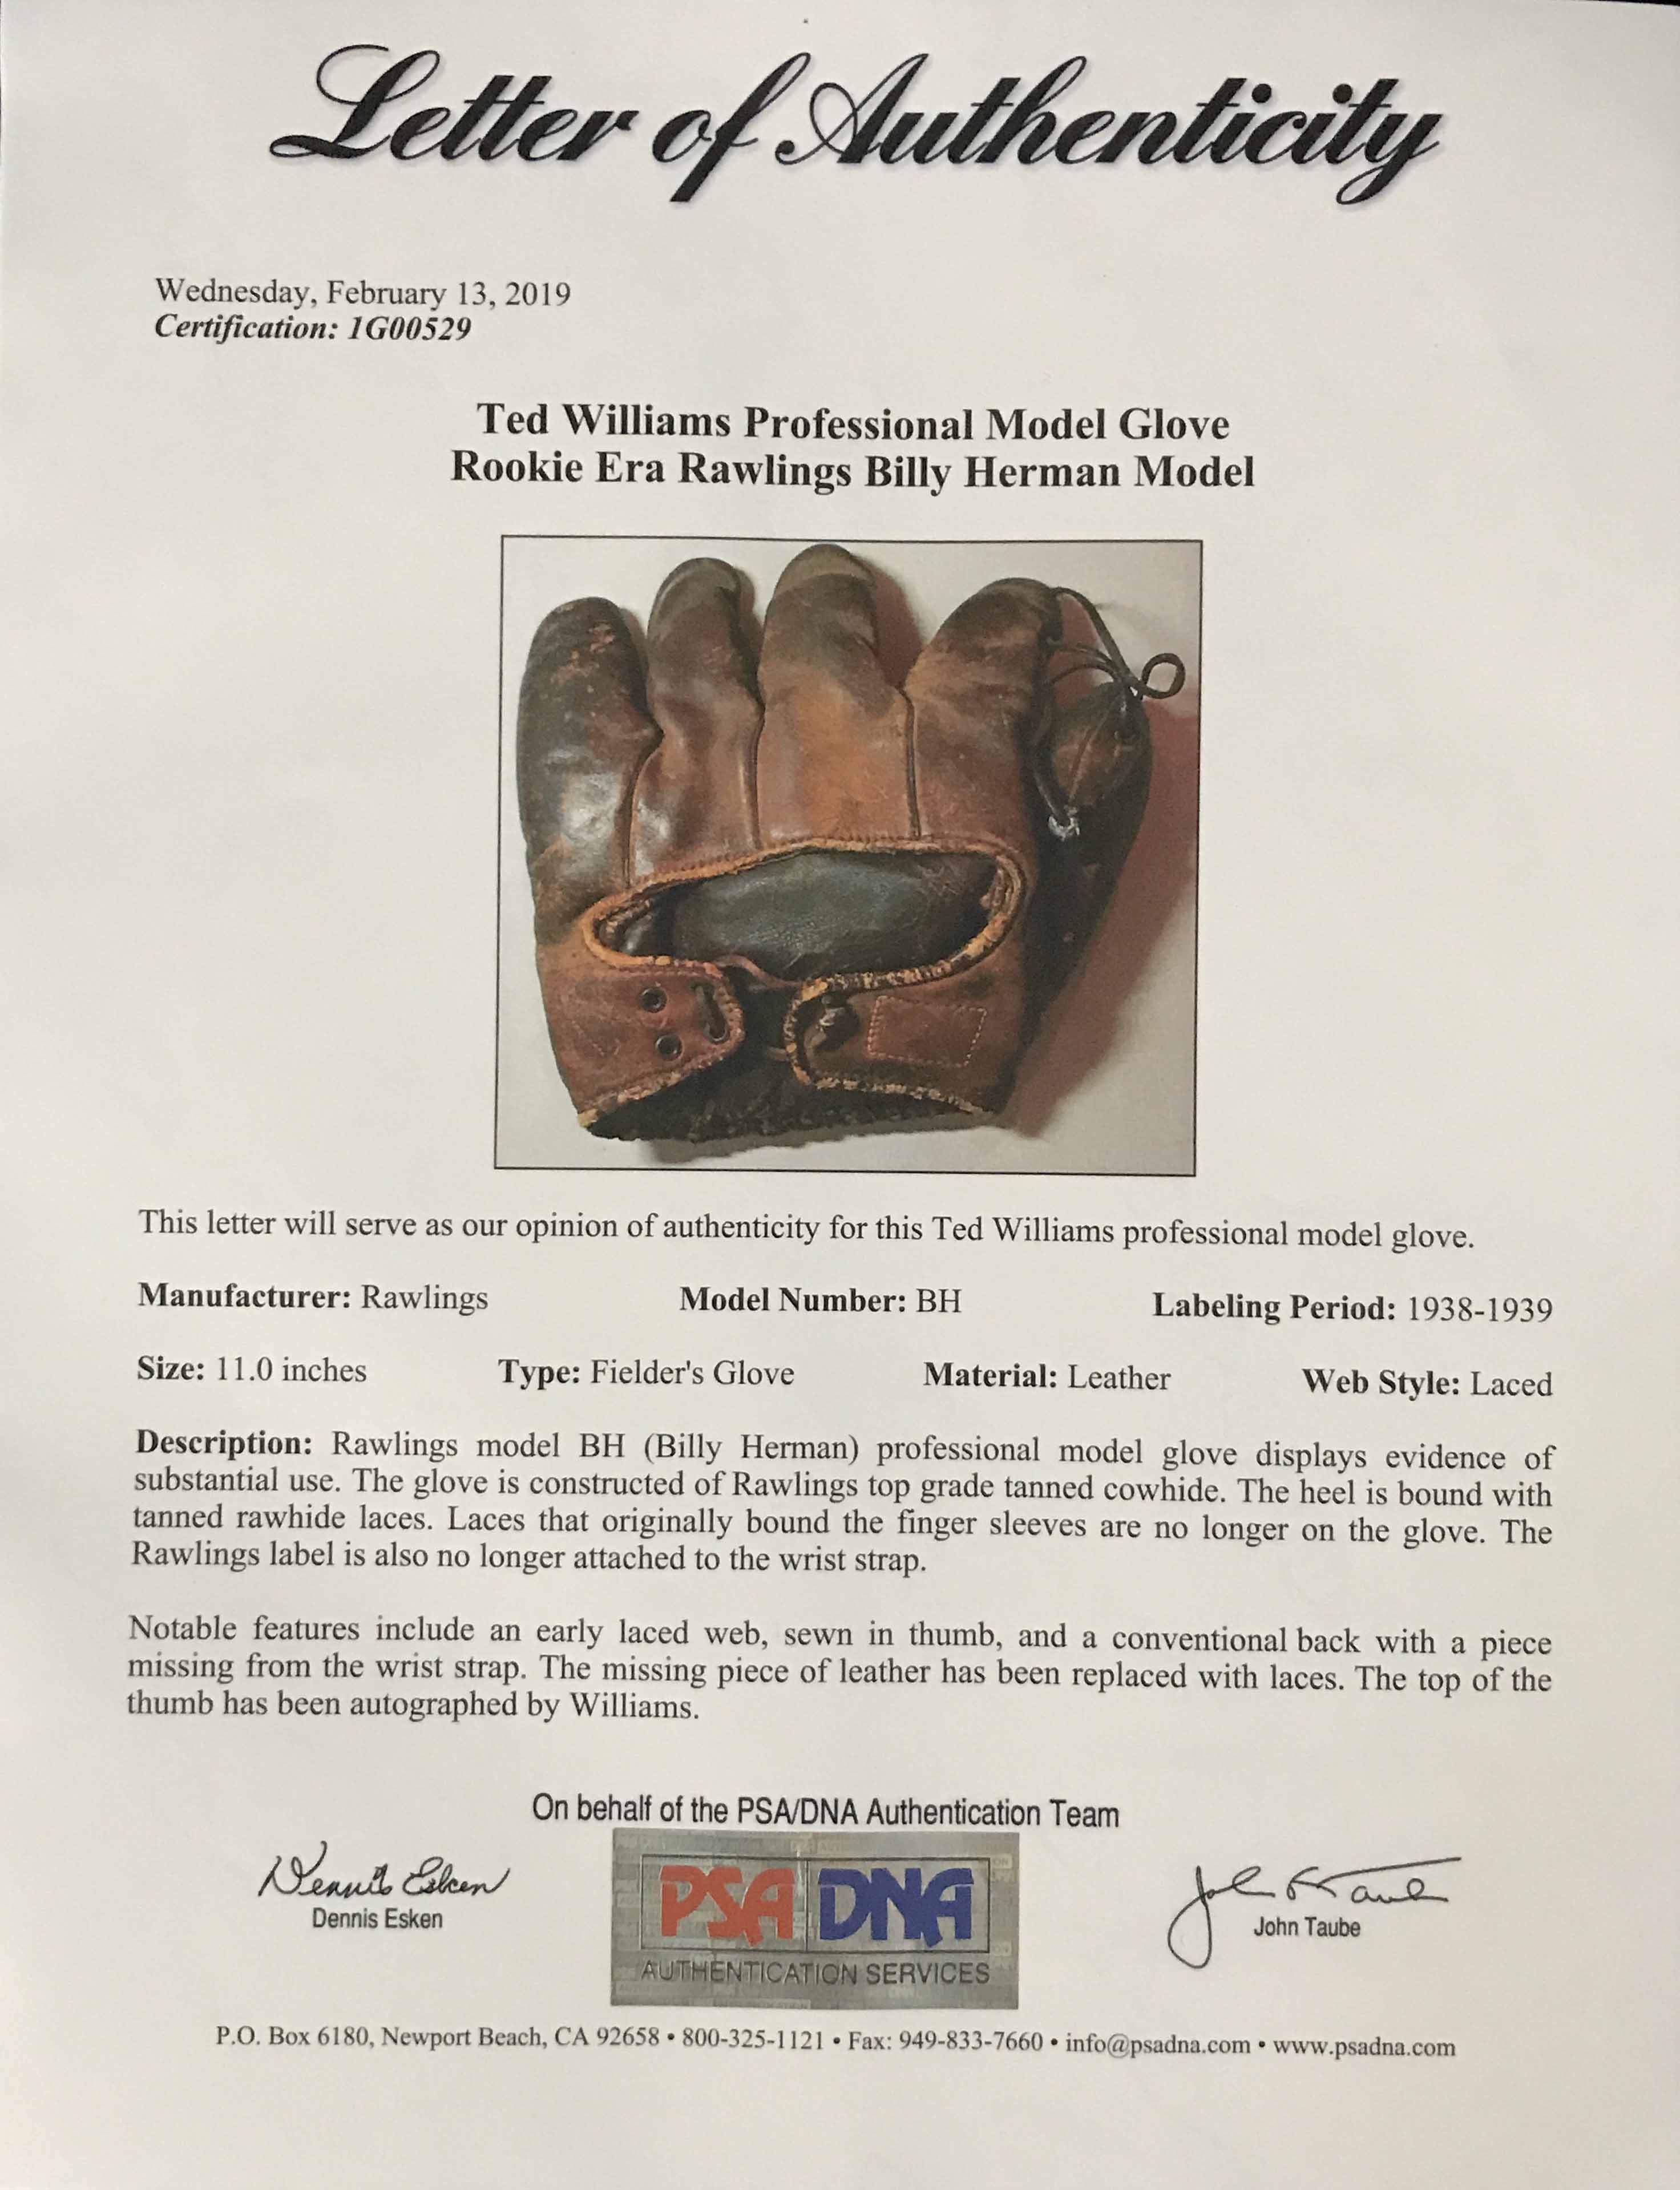 Ted Williams 1938-39 Game Used Rookie Era Glove + Auto PSA/DNA - Image 6